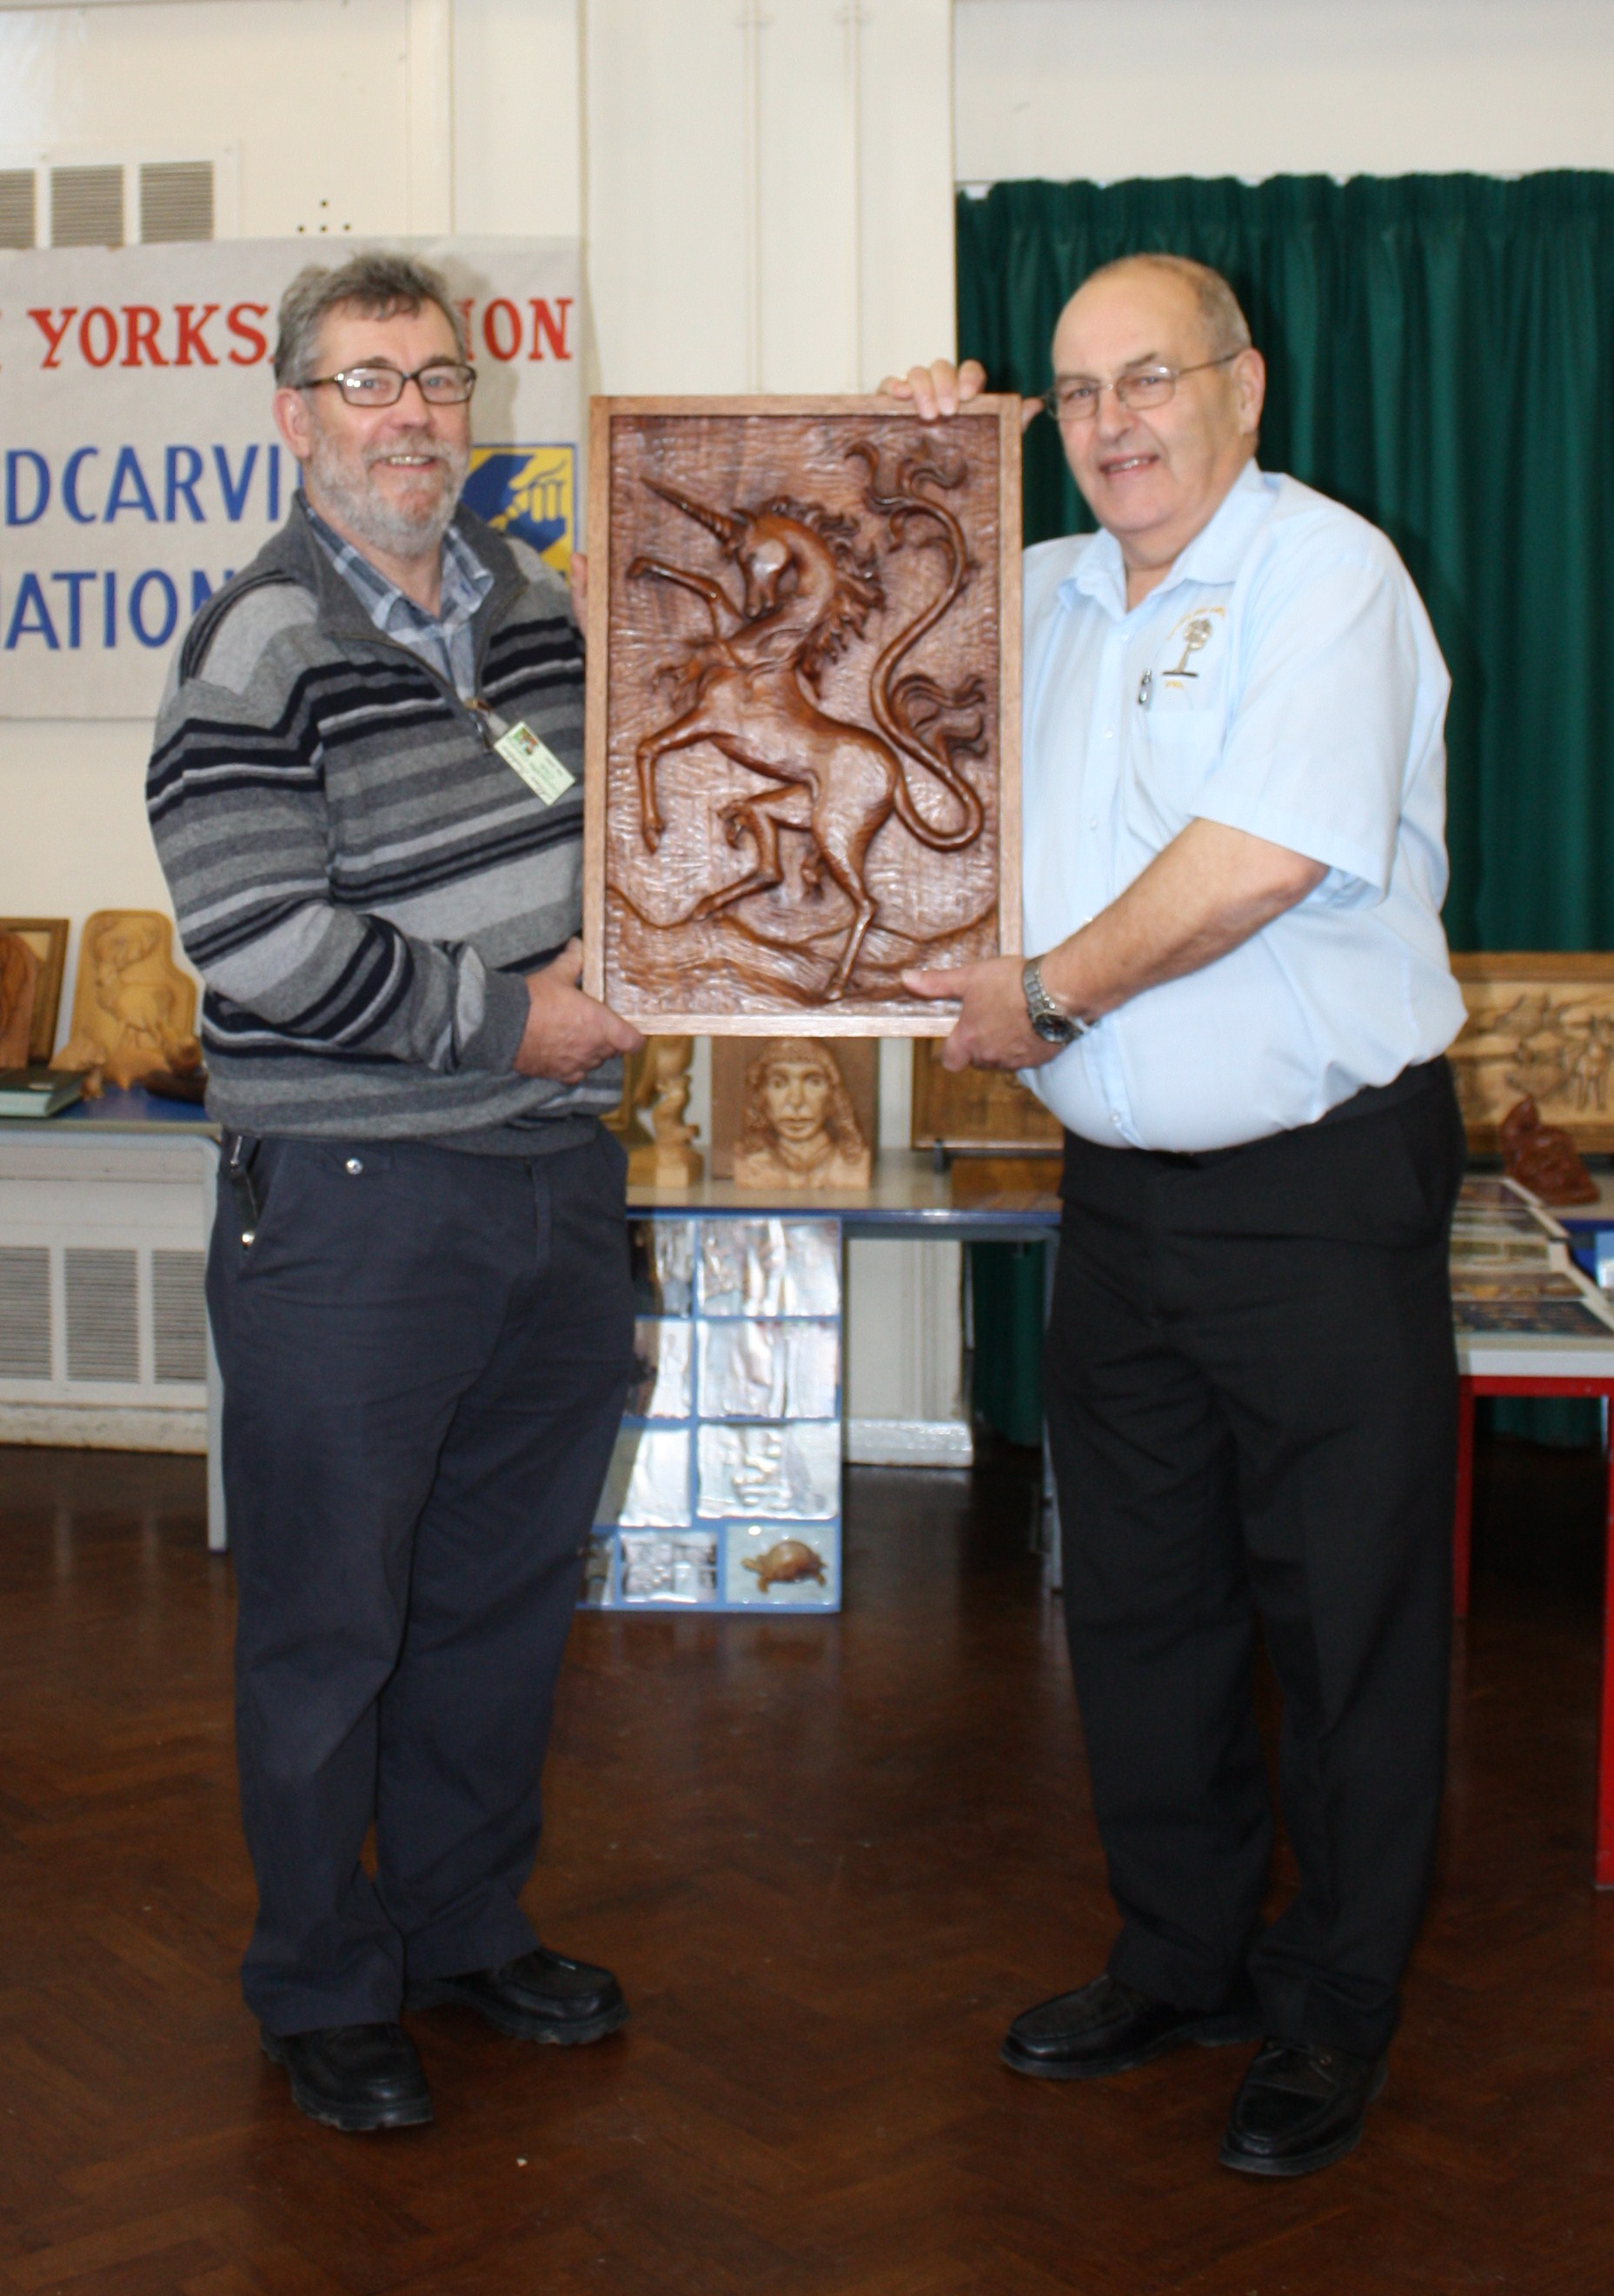 Alan Suddes and David Shires founders of Coniscliffe Carving Club